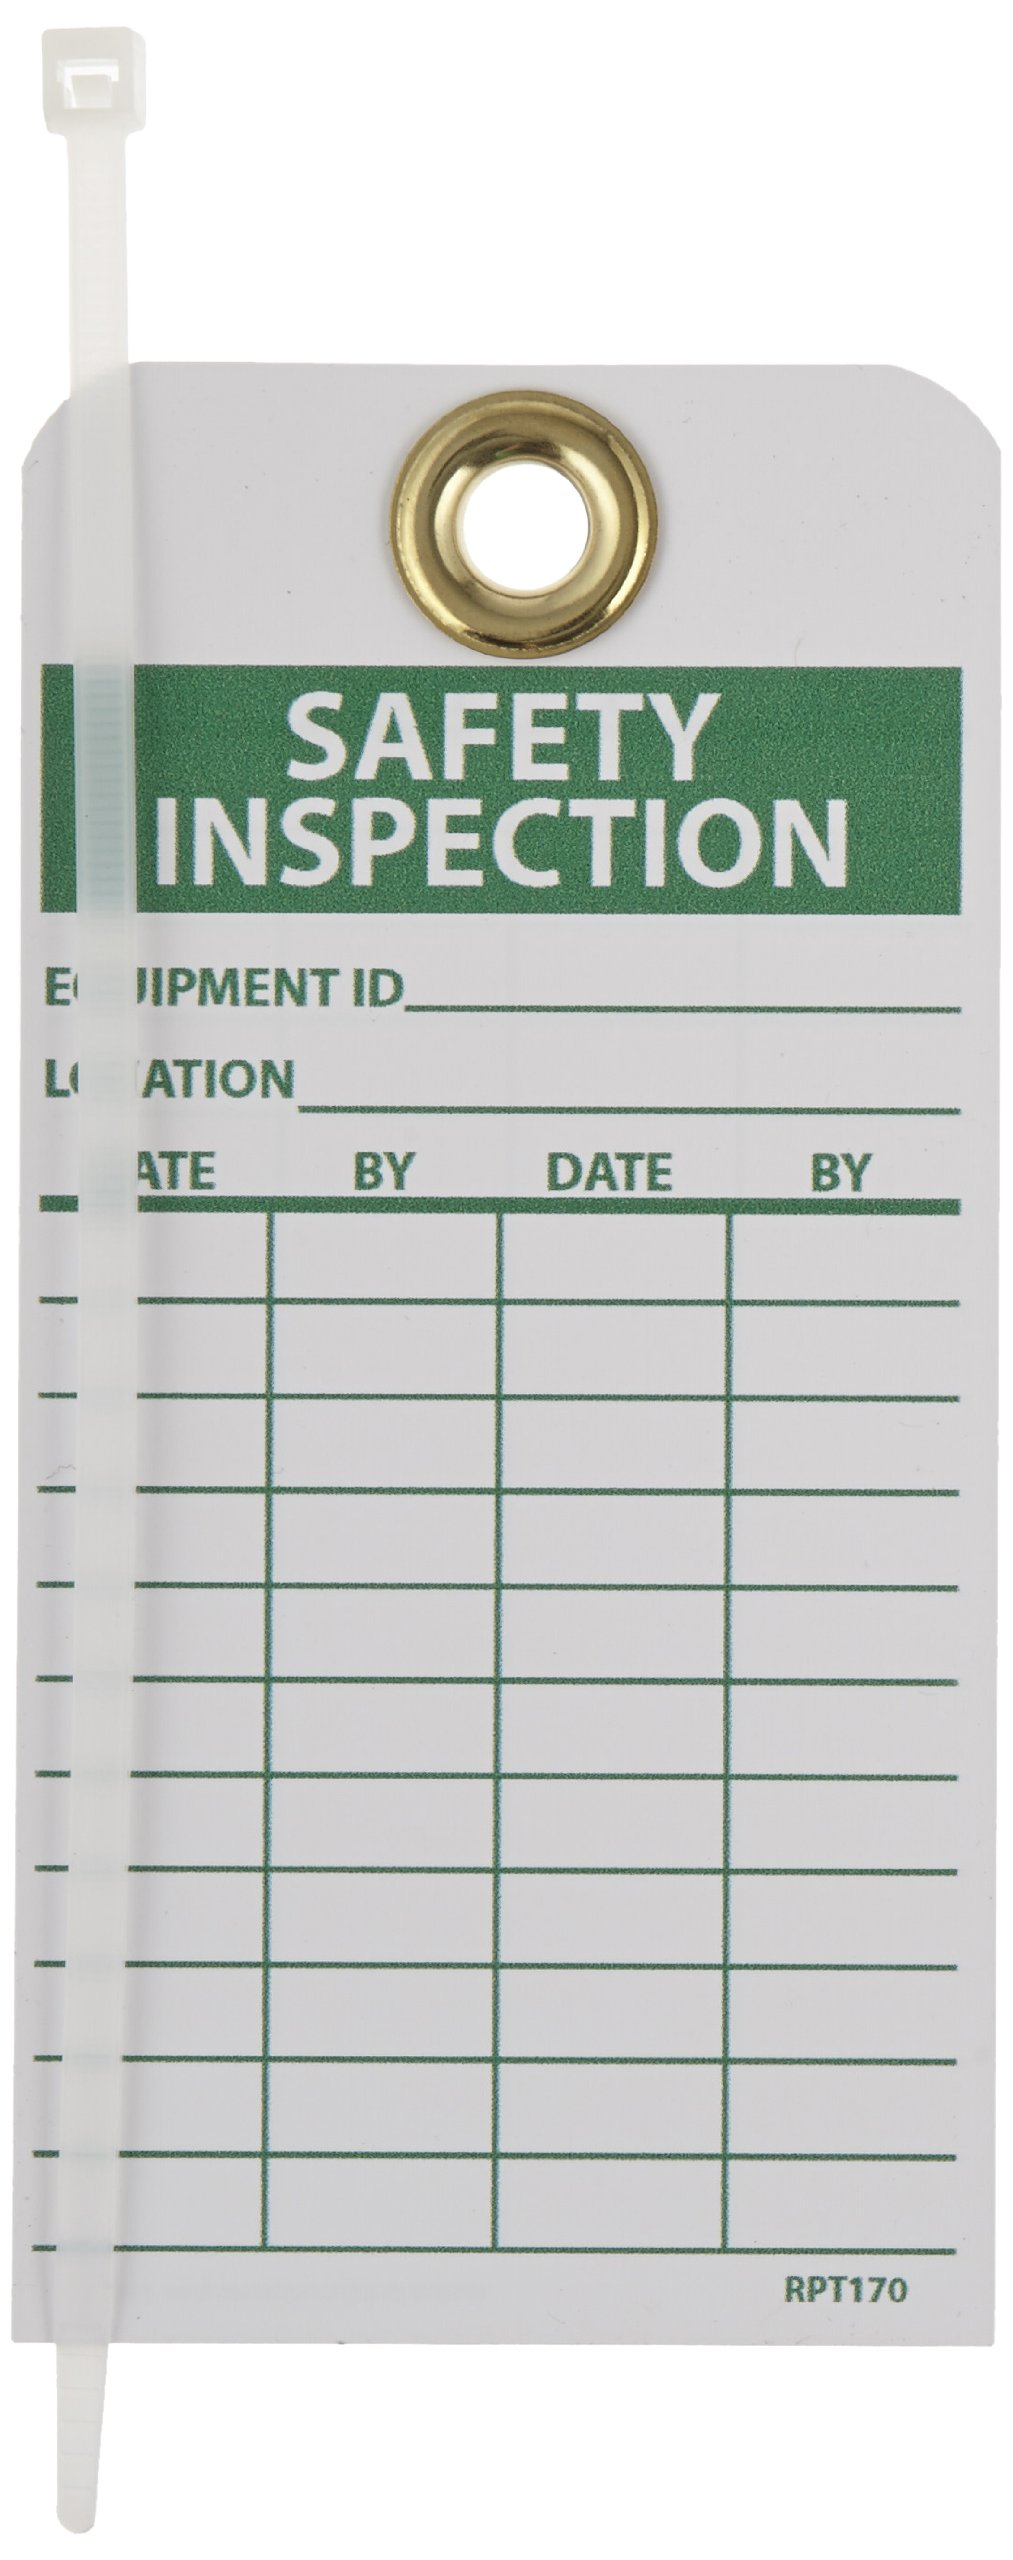 NMC RPT170G''SAFETY INSPECTION'' Accident Prevention Tag with Brass Grommet, Unrippable Vinyl, 3'' Length, 6'' Height, Green on White (Pack of 25)